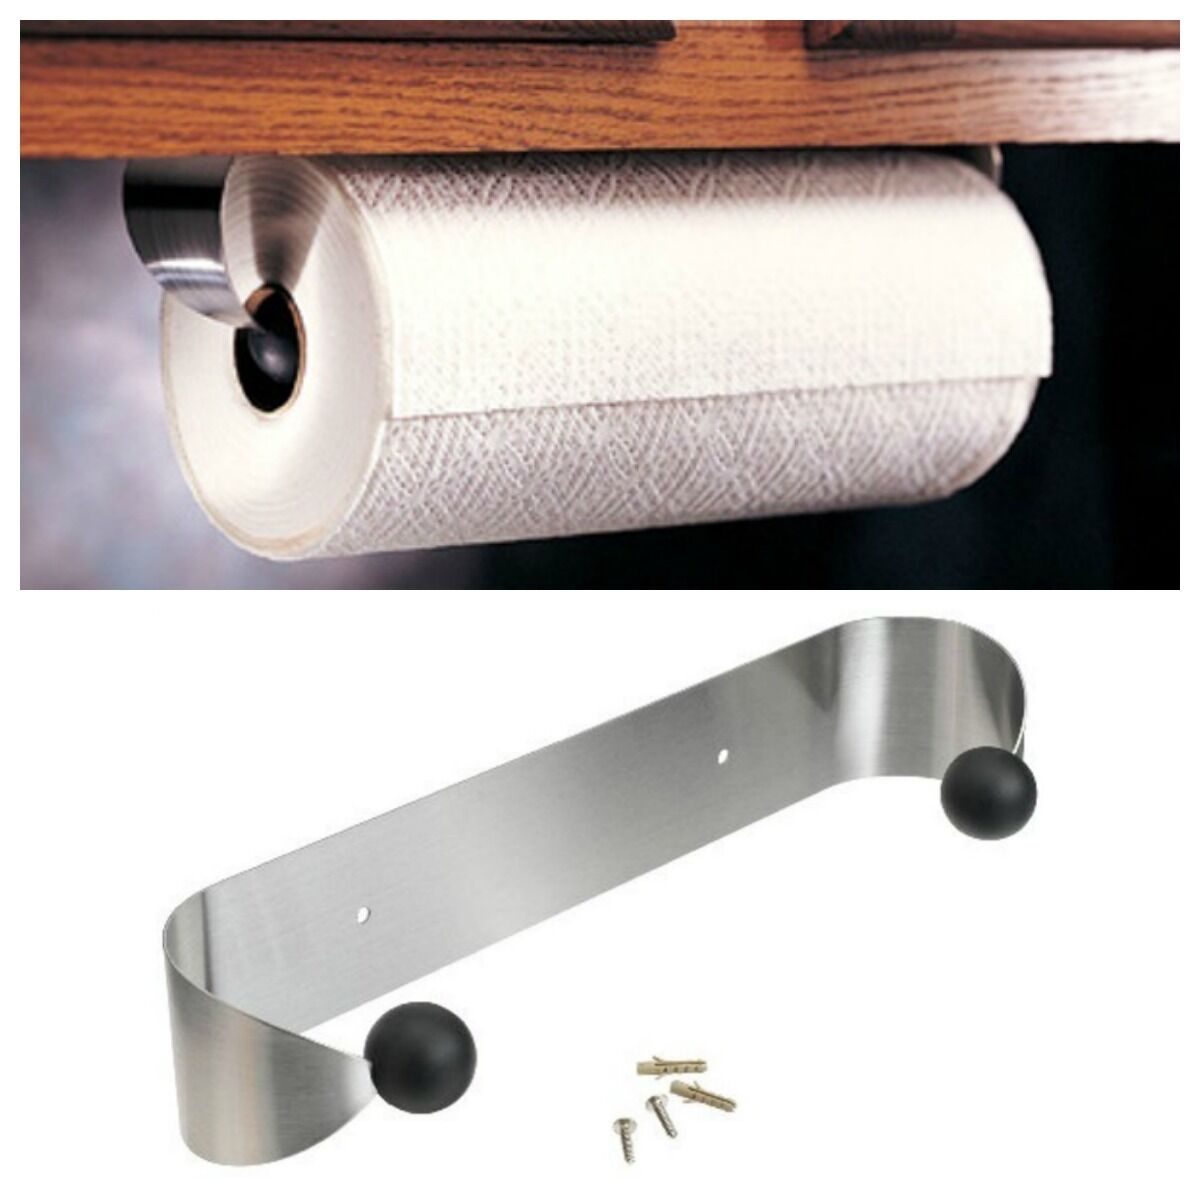 Prodyne Stainless Steel Paper Towel Holder Rack Wall Mount Or Under Cabinet 1 Of 8only 0 Available